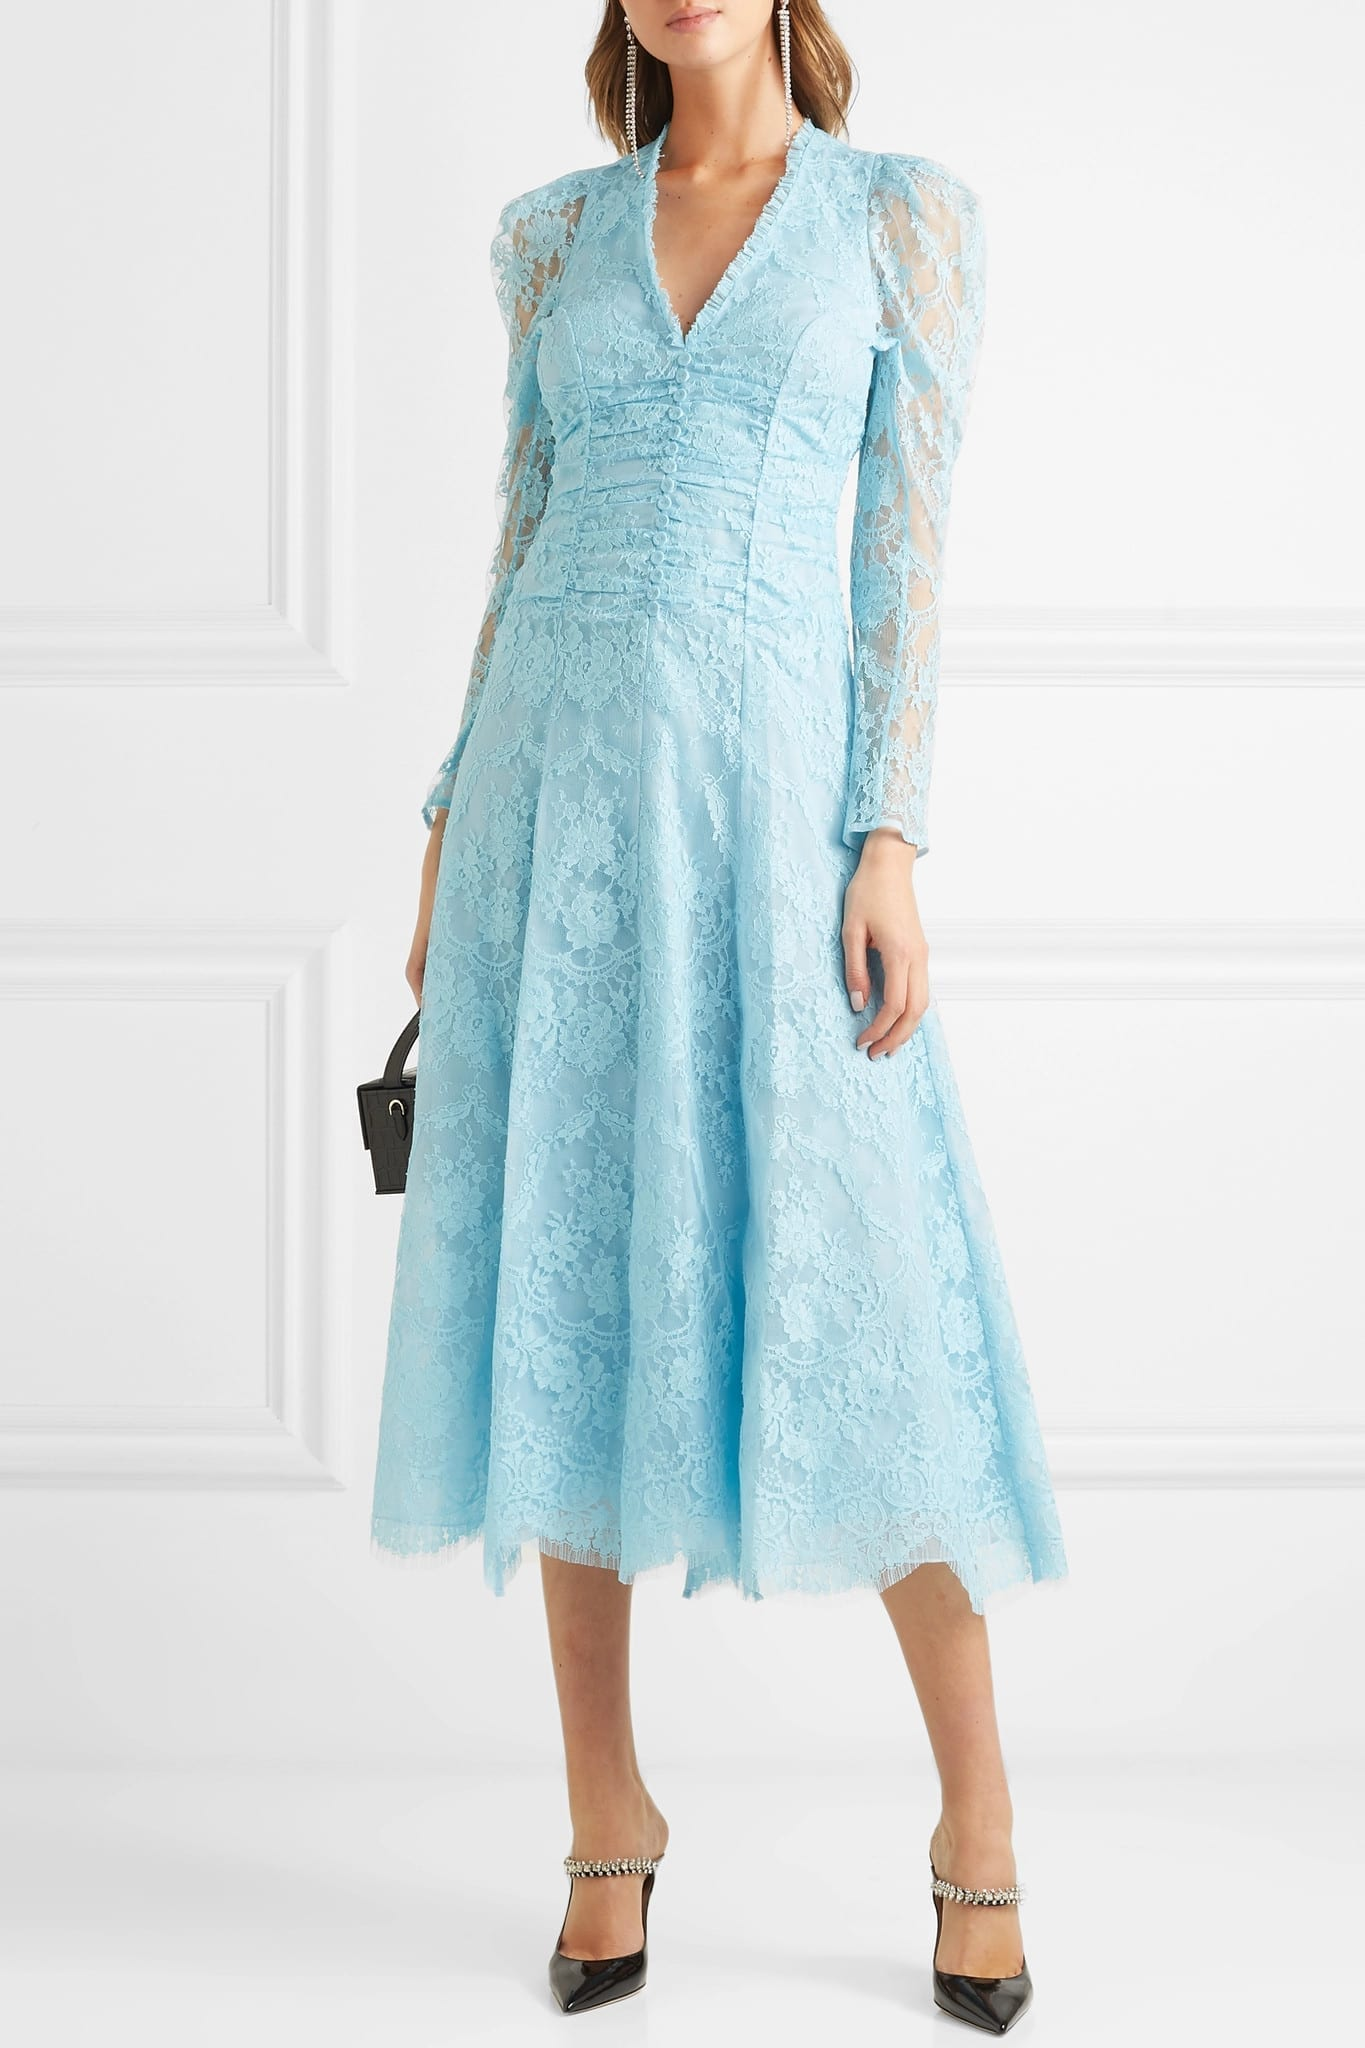 ERDEM Annalee Ruched Corded Lace Blue Dress